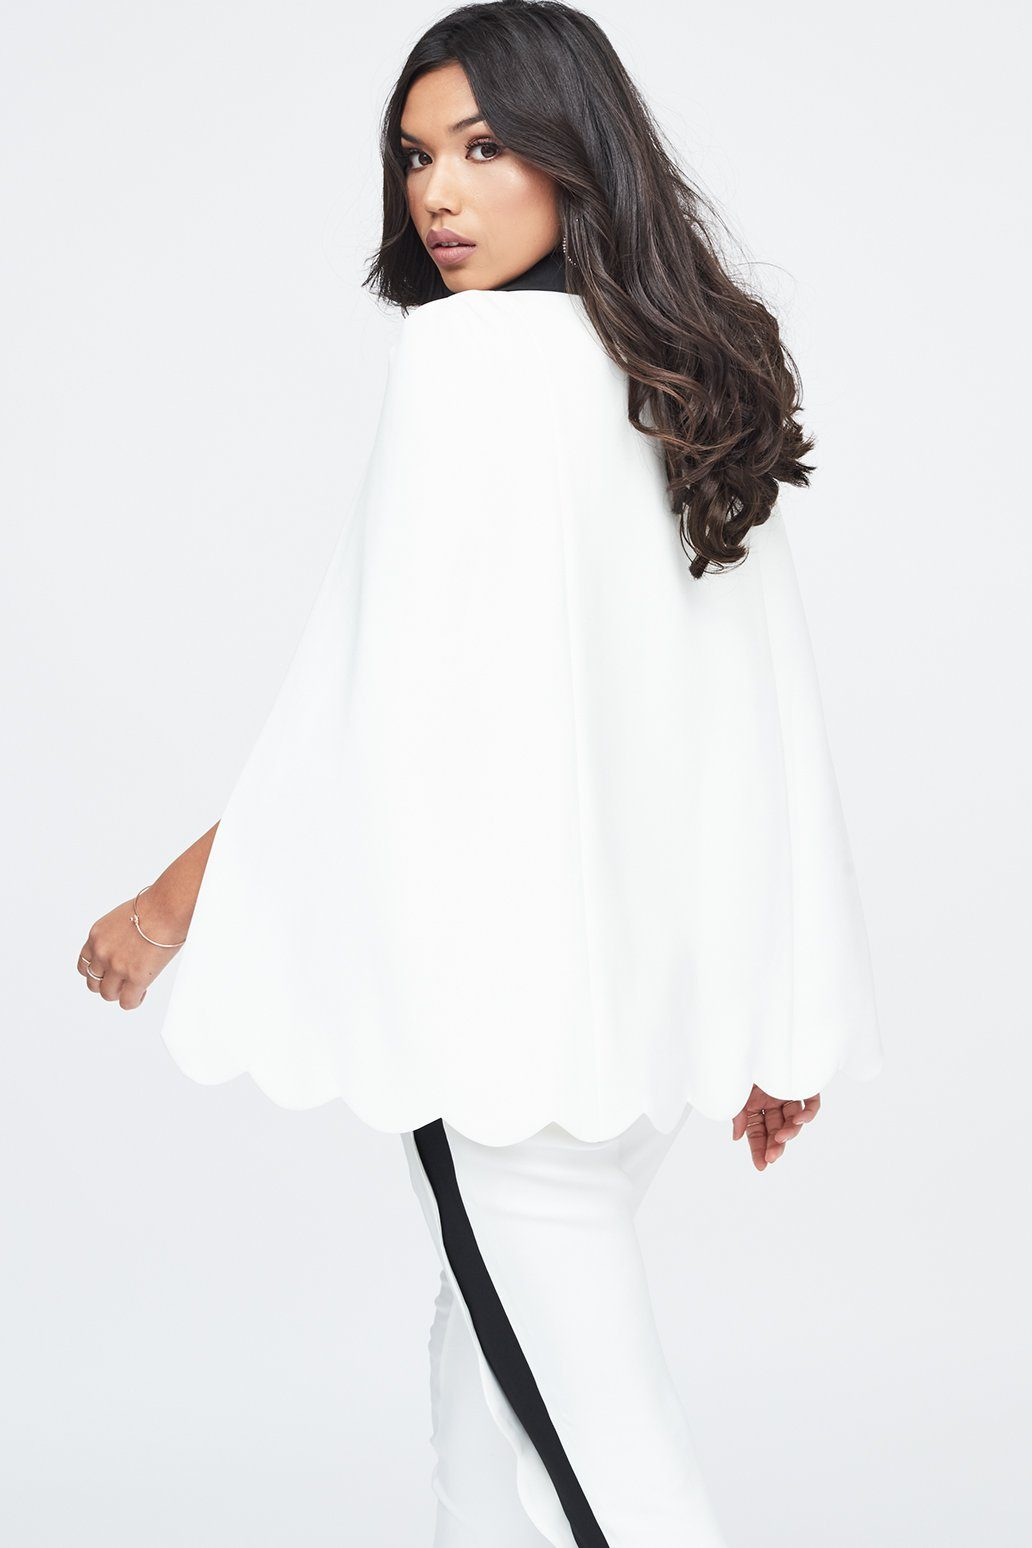 Scallop Cape in White